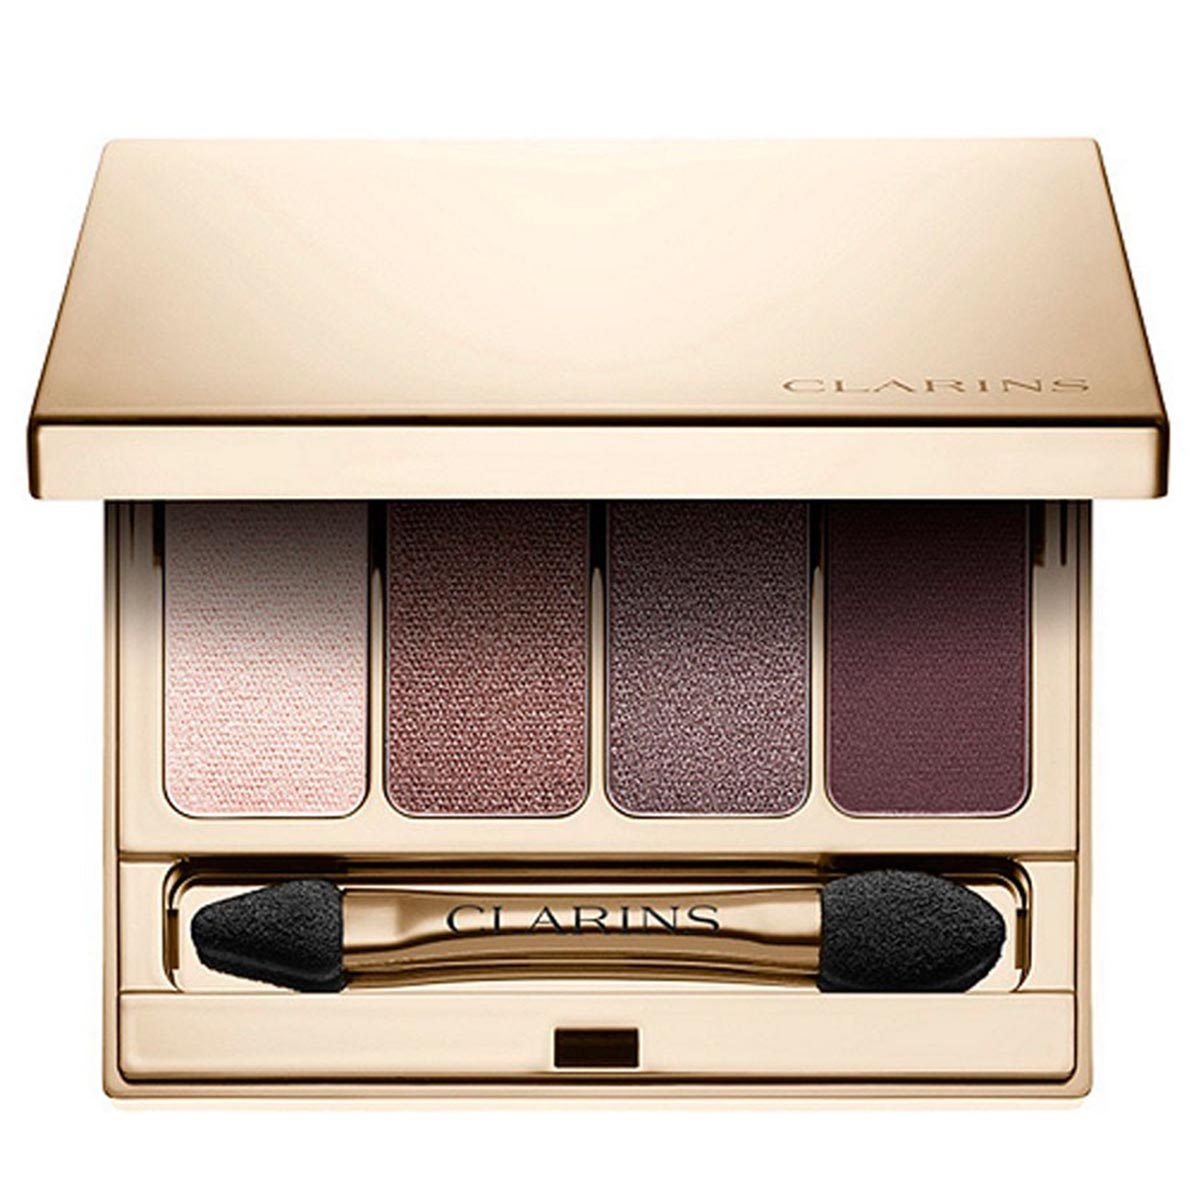 Clarins 4 couleurs eyeshadow 05